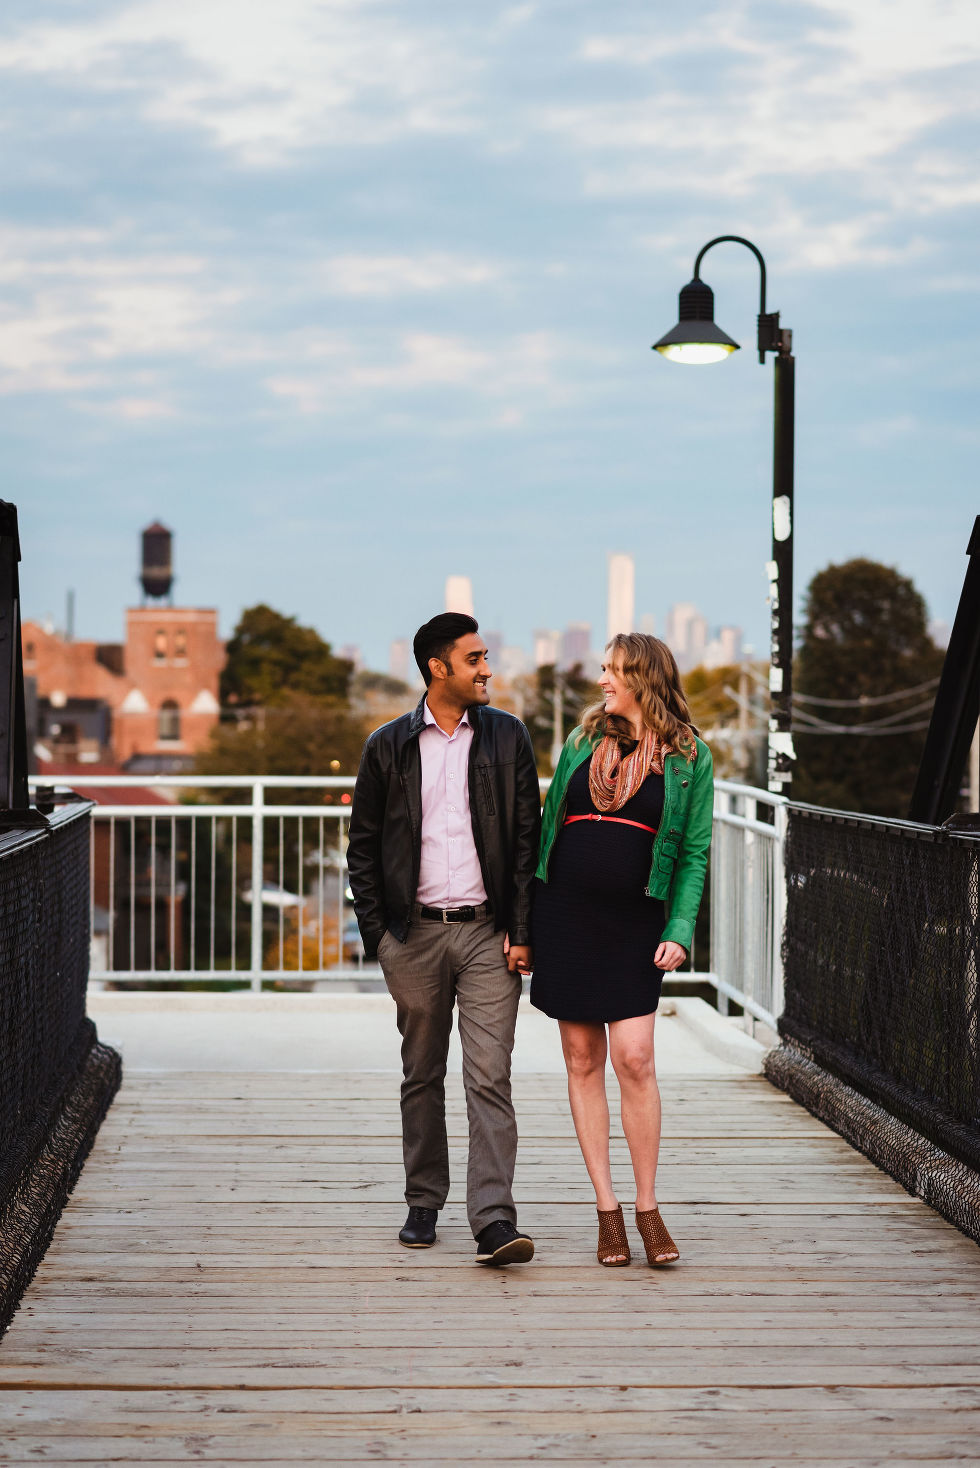 man and woman stroll together holding hands on train platform in the Junction with Toronto skyline in background